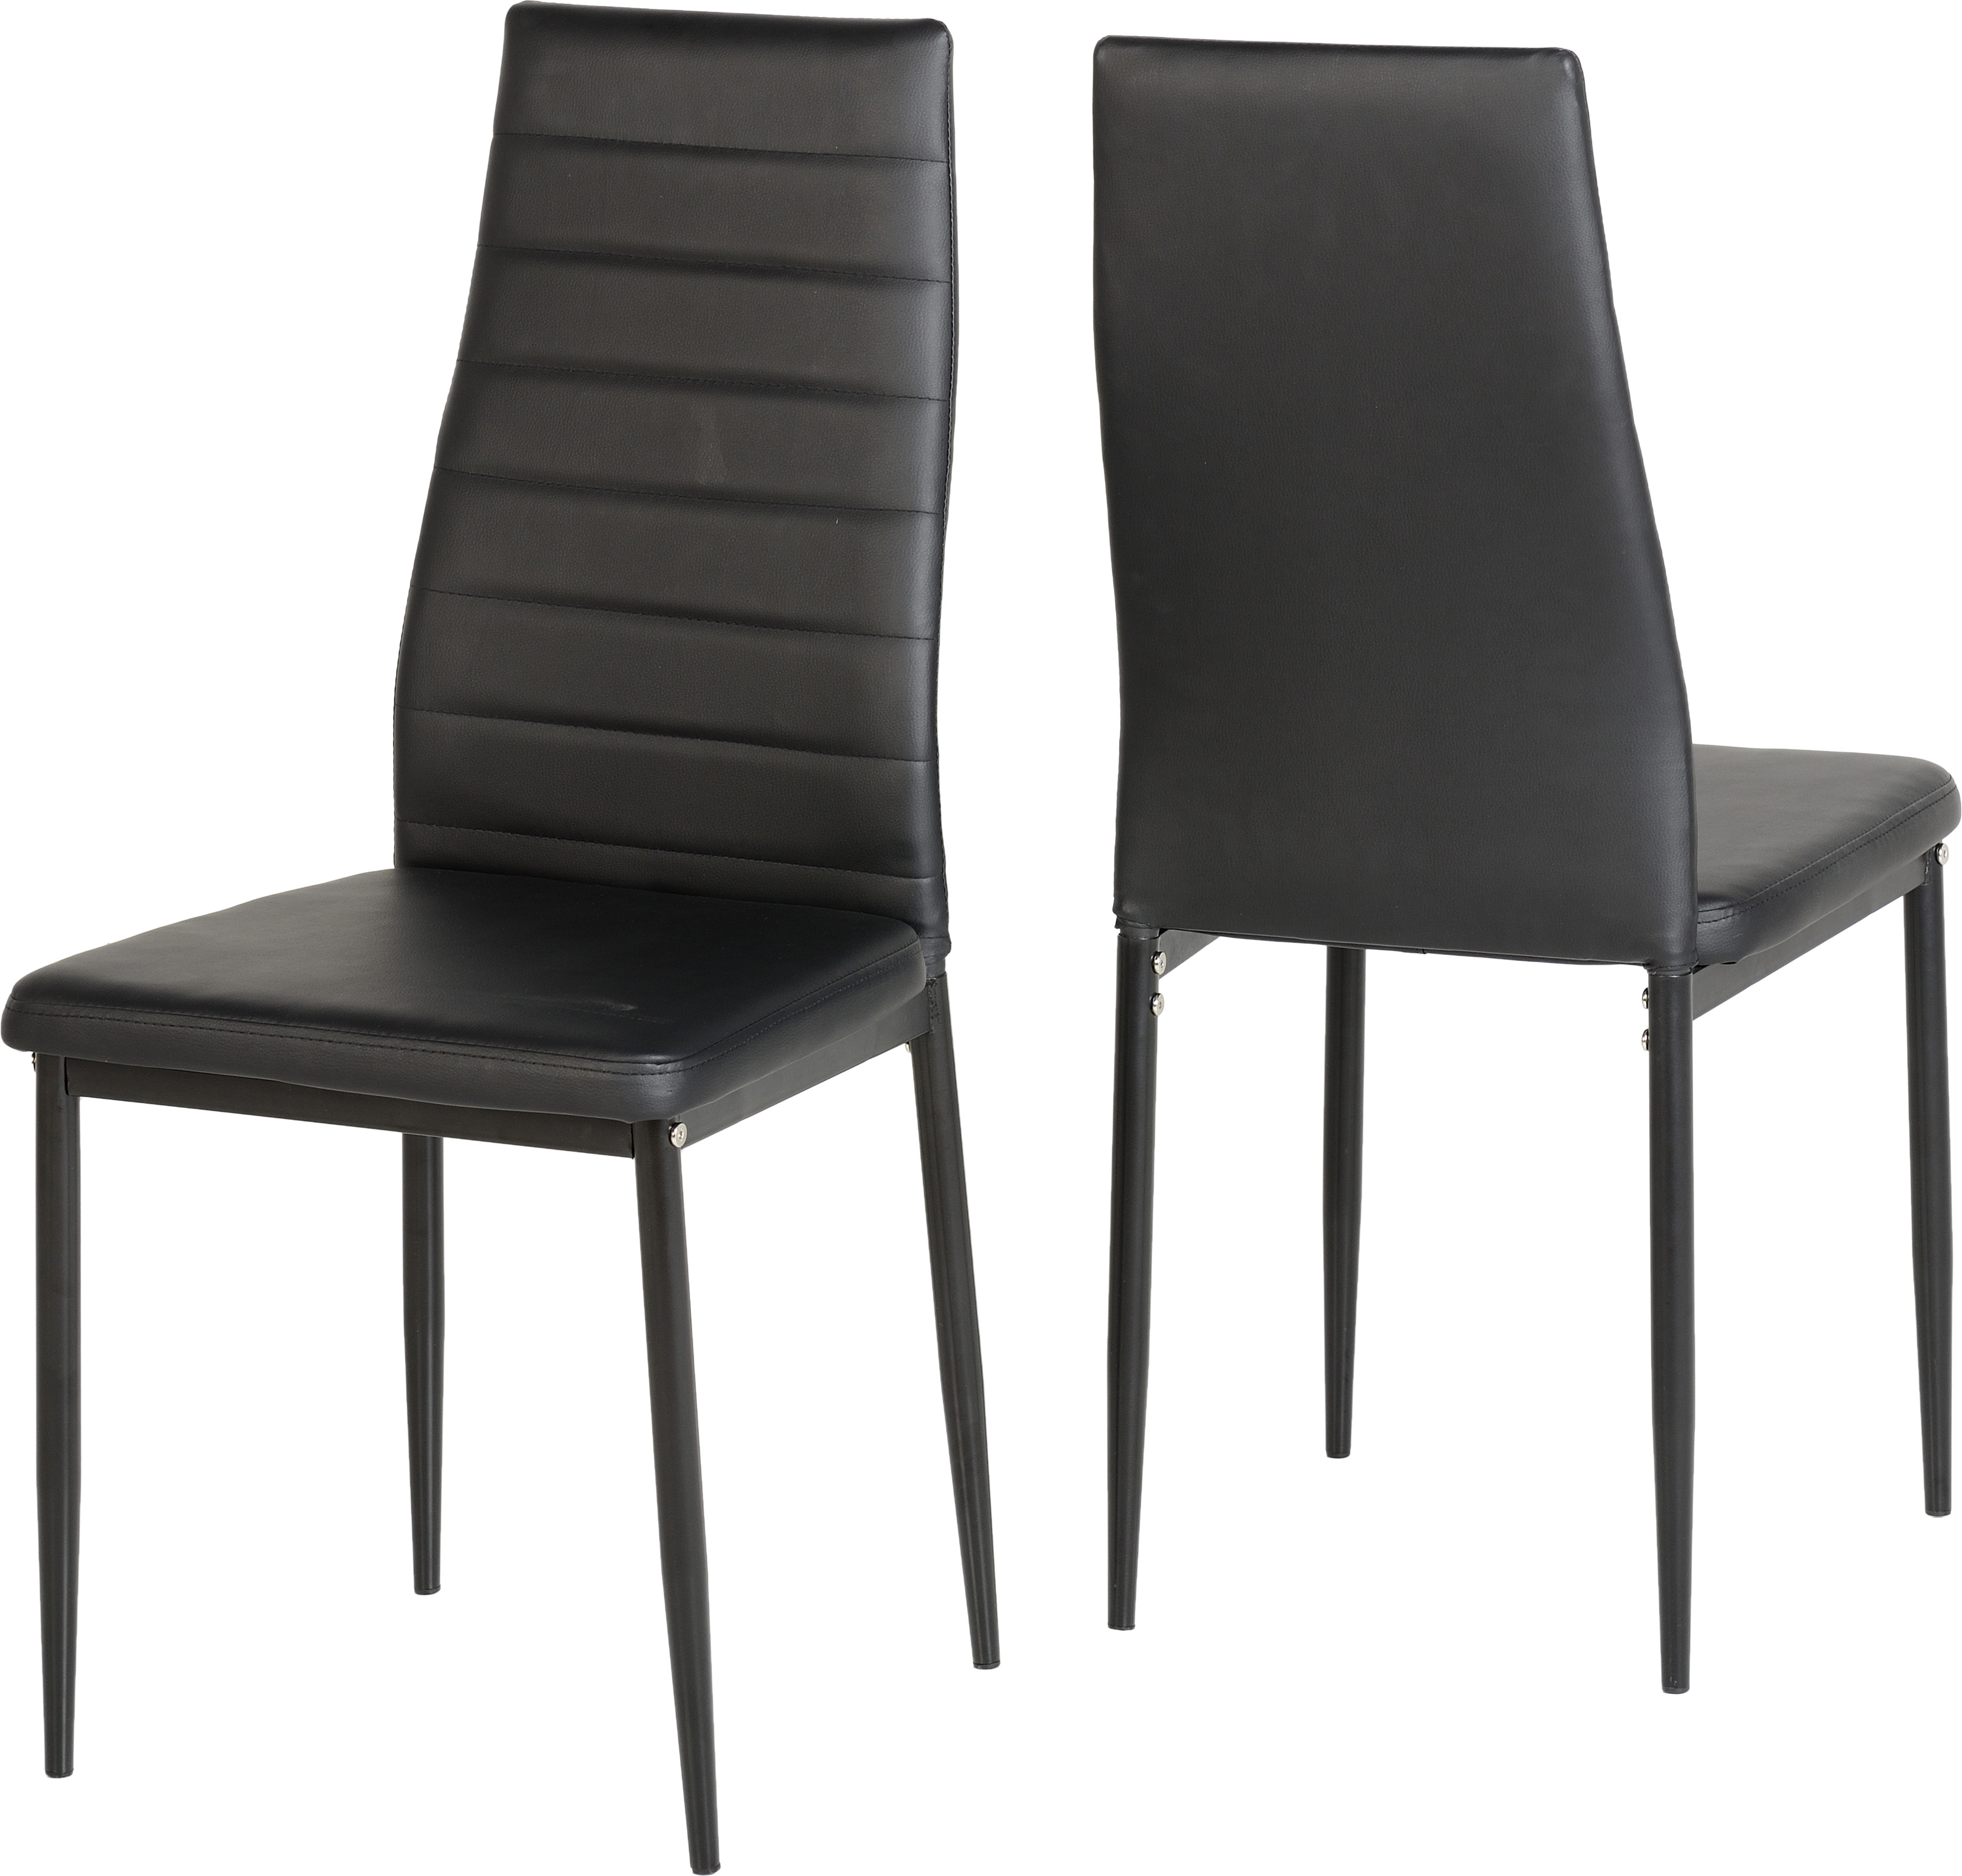 Image of Abbey Chair in Black set of 2